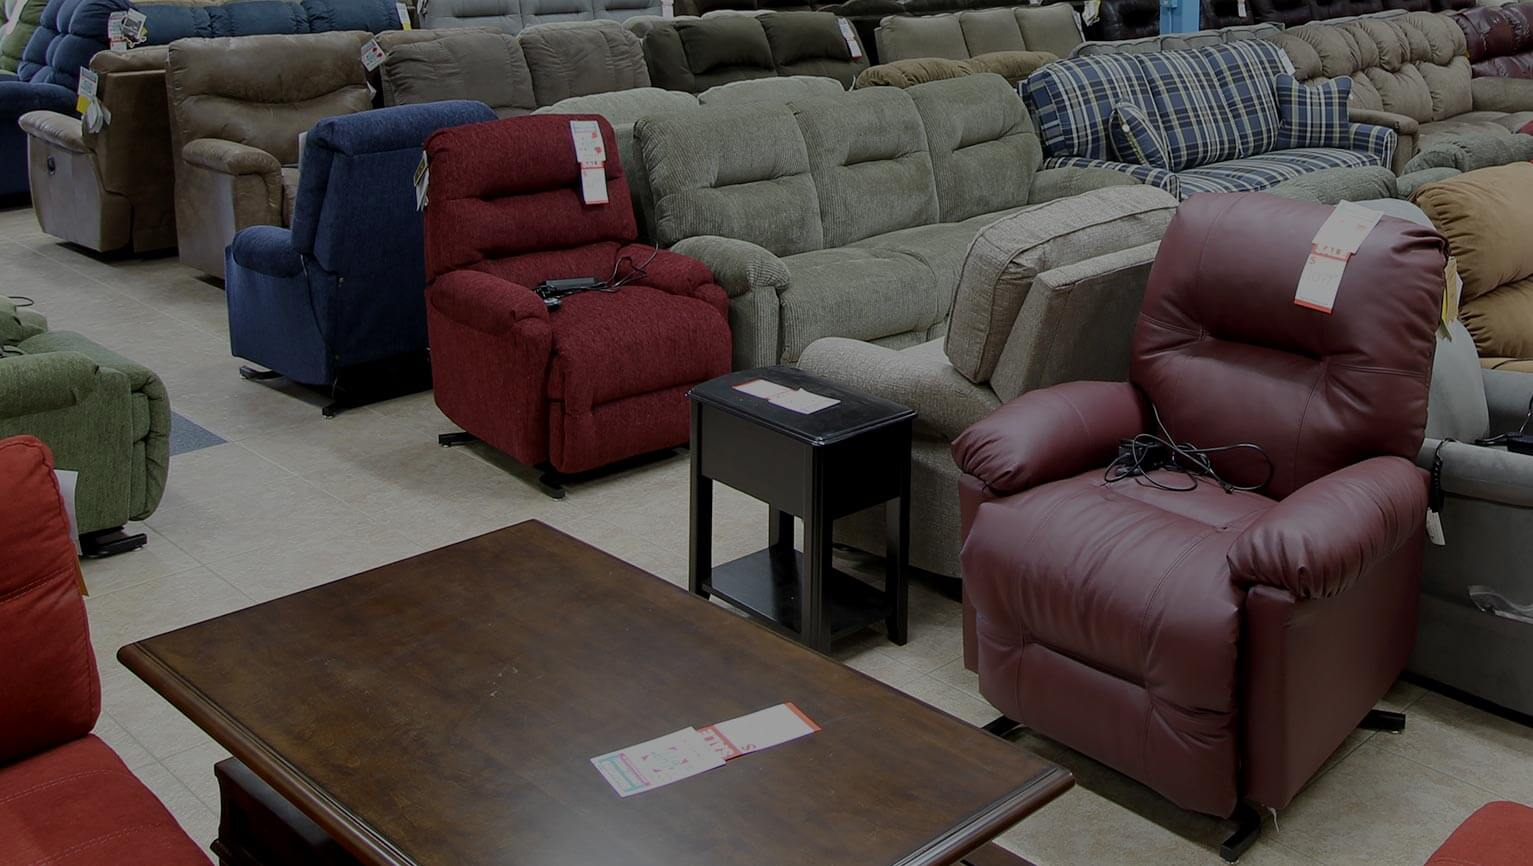 Furniture Stores In Nh 28 Images Furniture Store